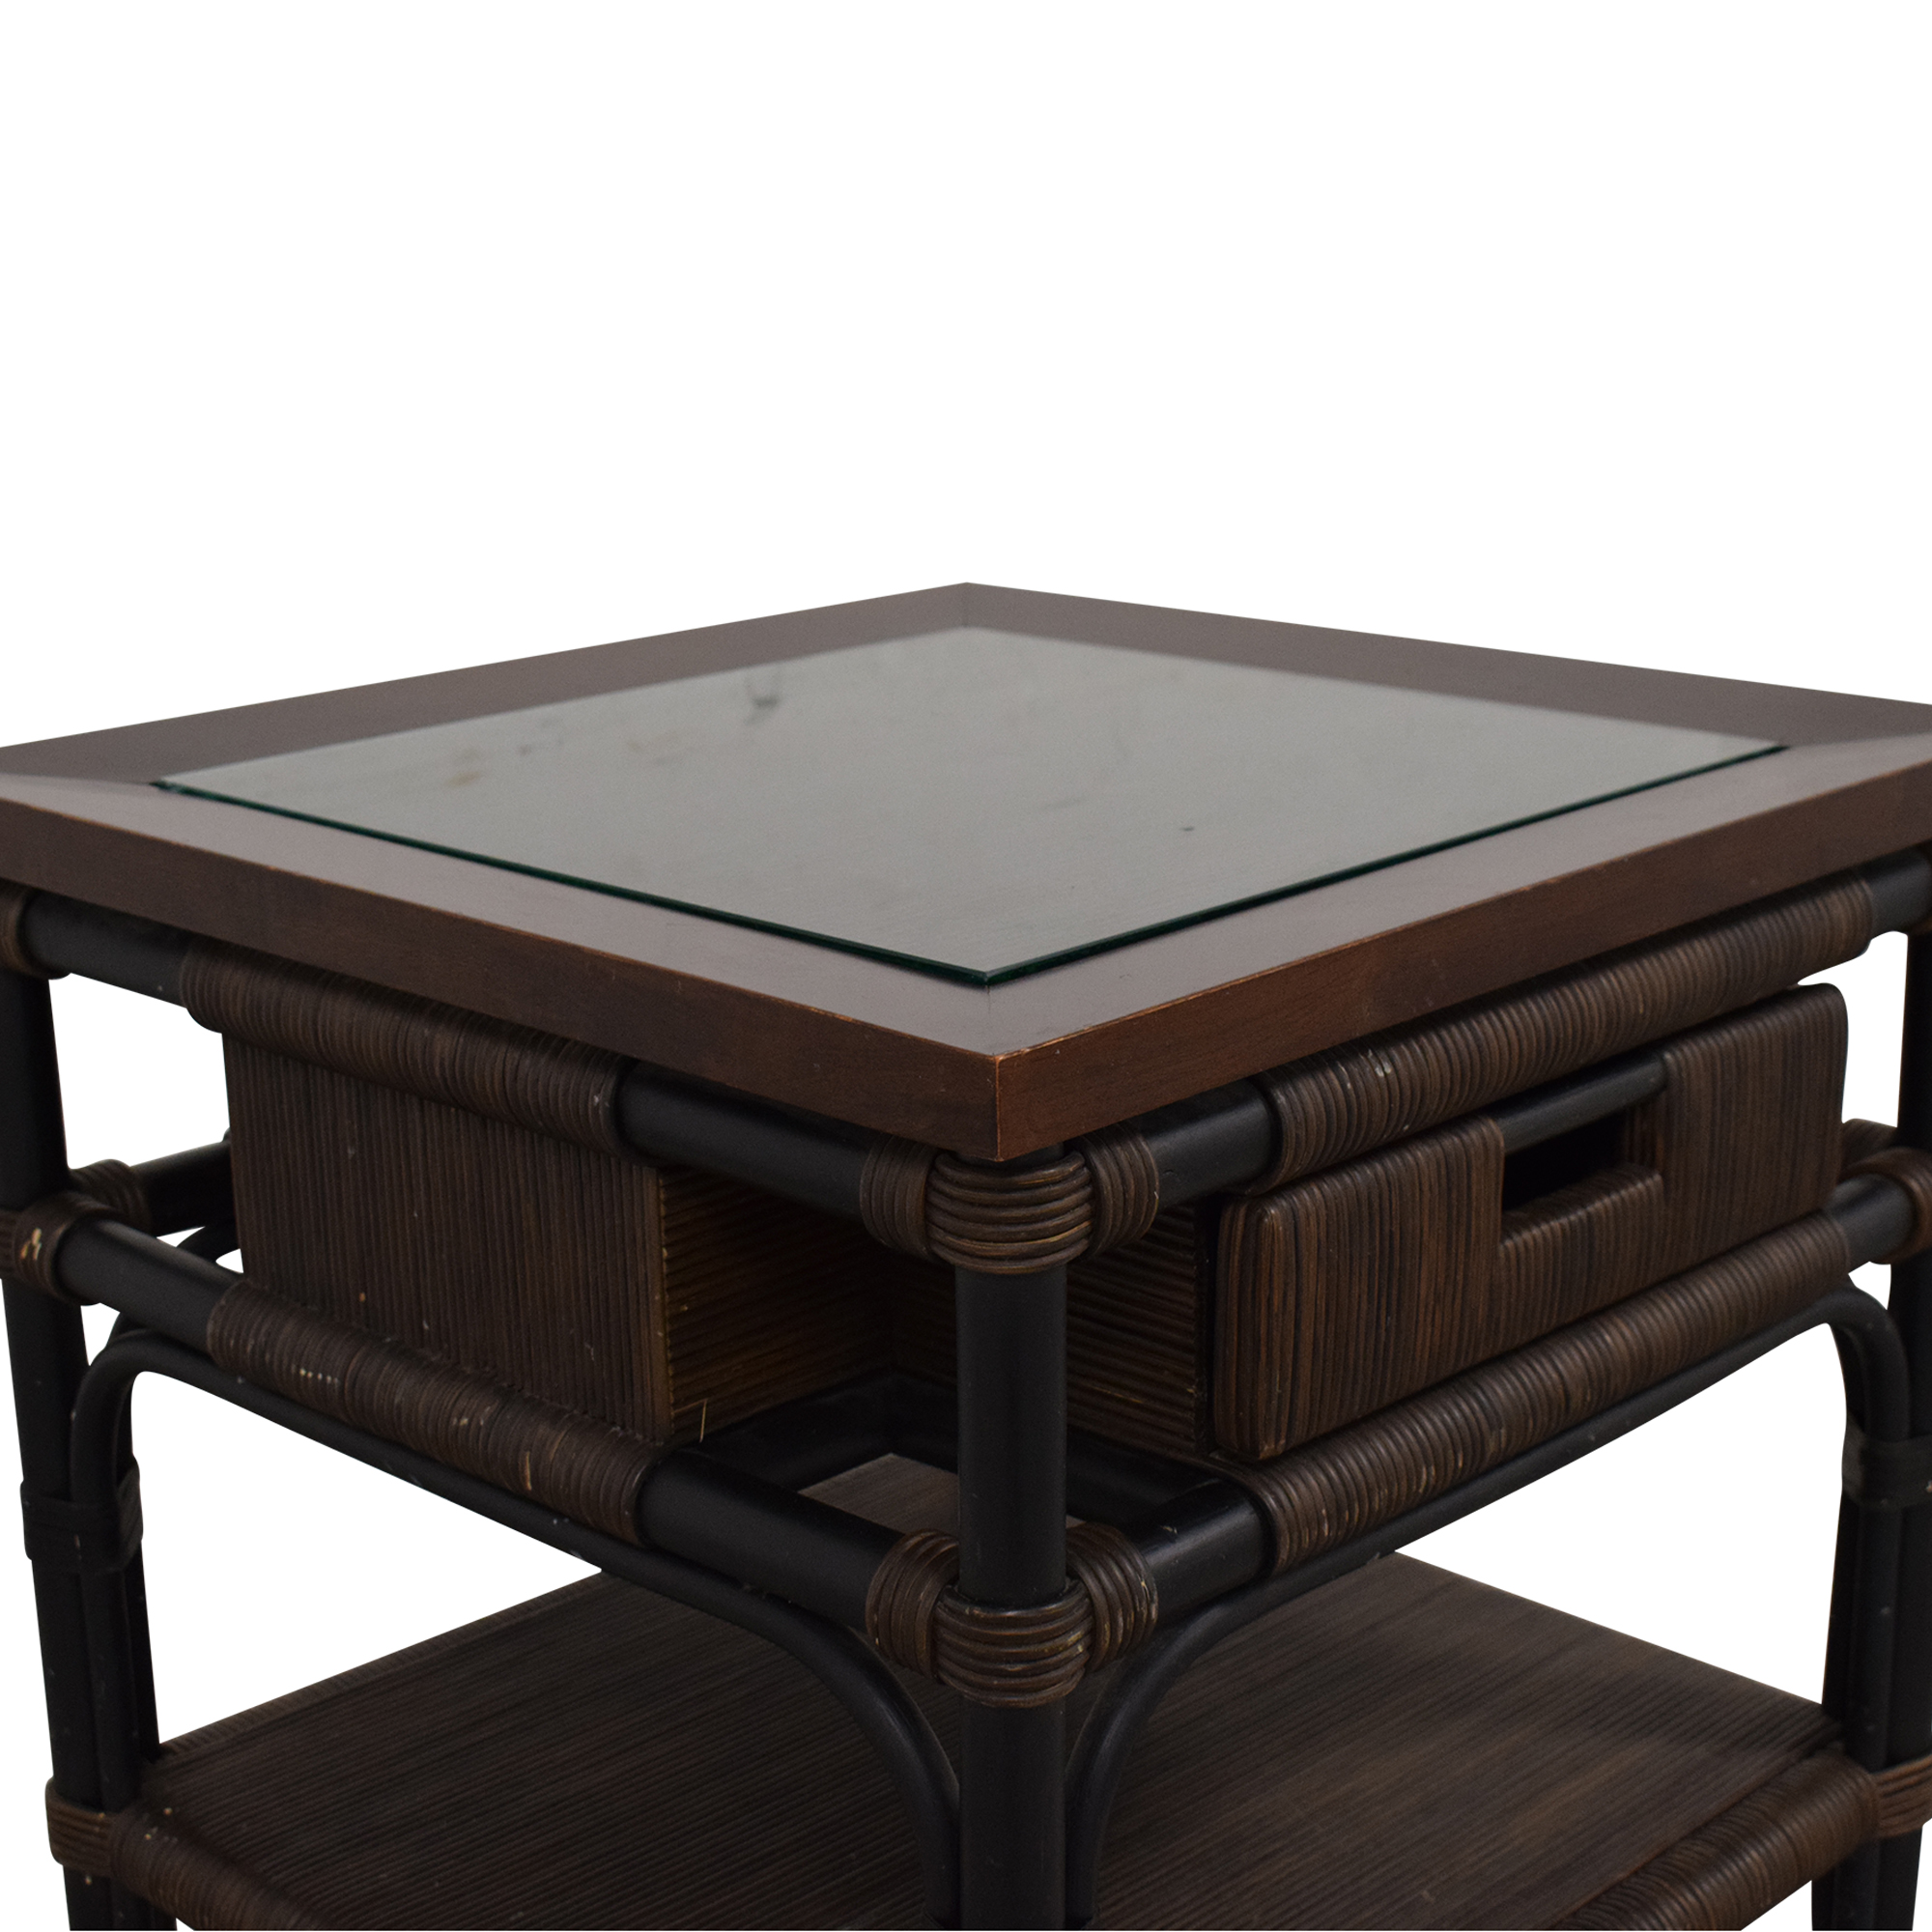 Donghia Donghia Modern Bamboo and Reed Table on sale